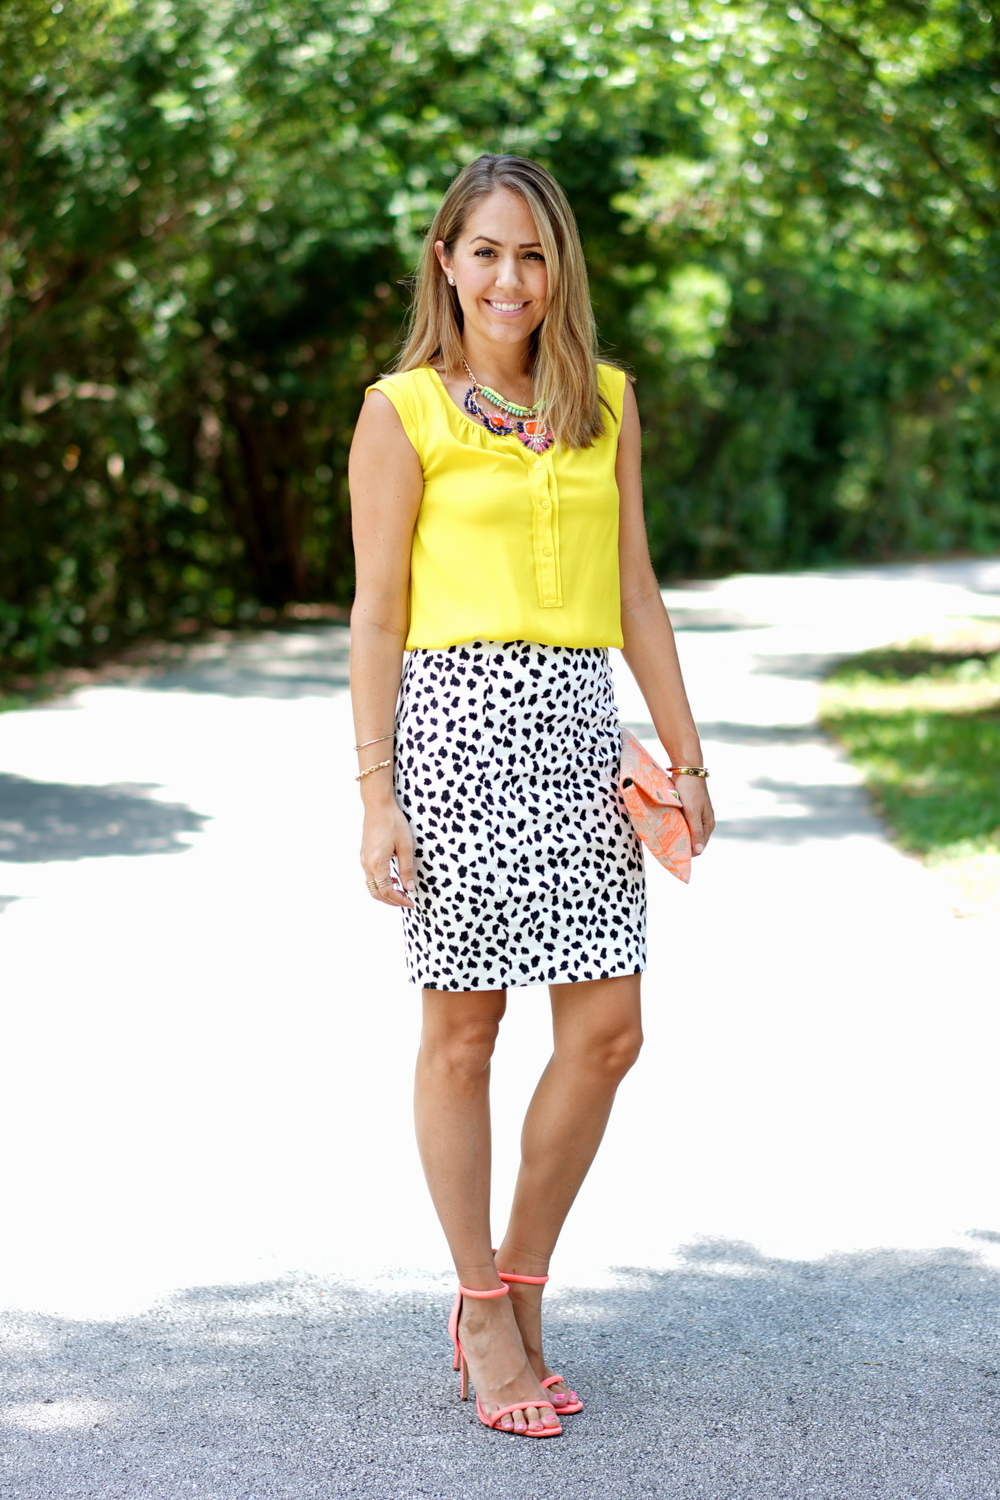 Yellow top, Dalmatian print skirt, orange heels